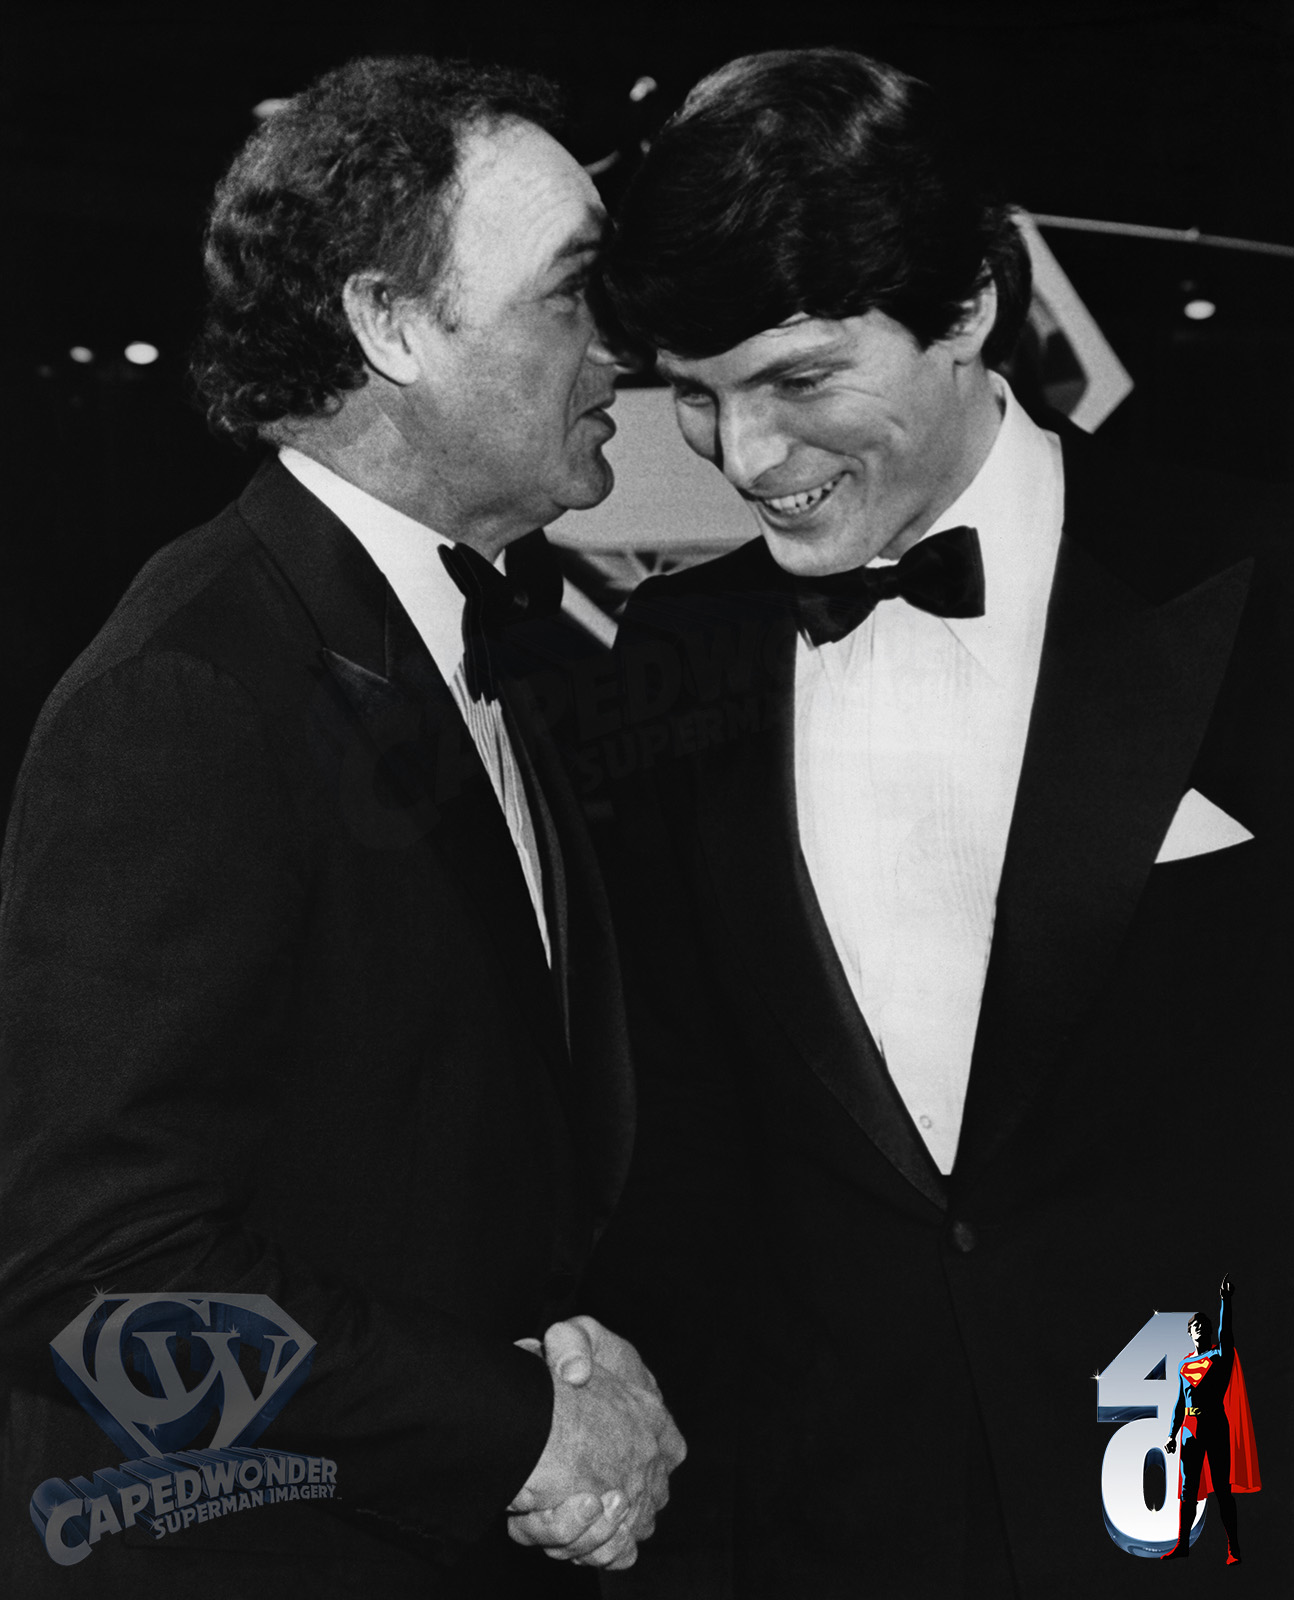 CW-STM-Hollywood-premiere-Dec-14-78-Reeve-Hackman-shaking-hands